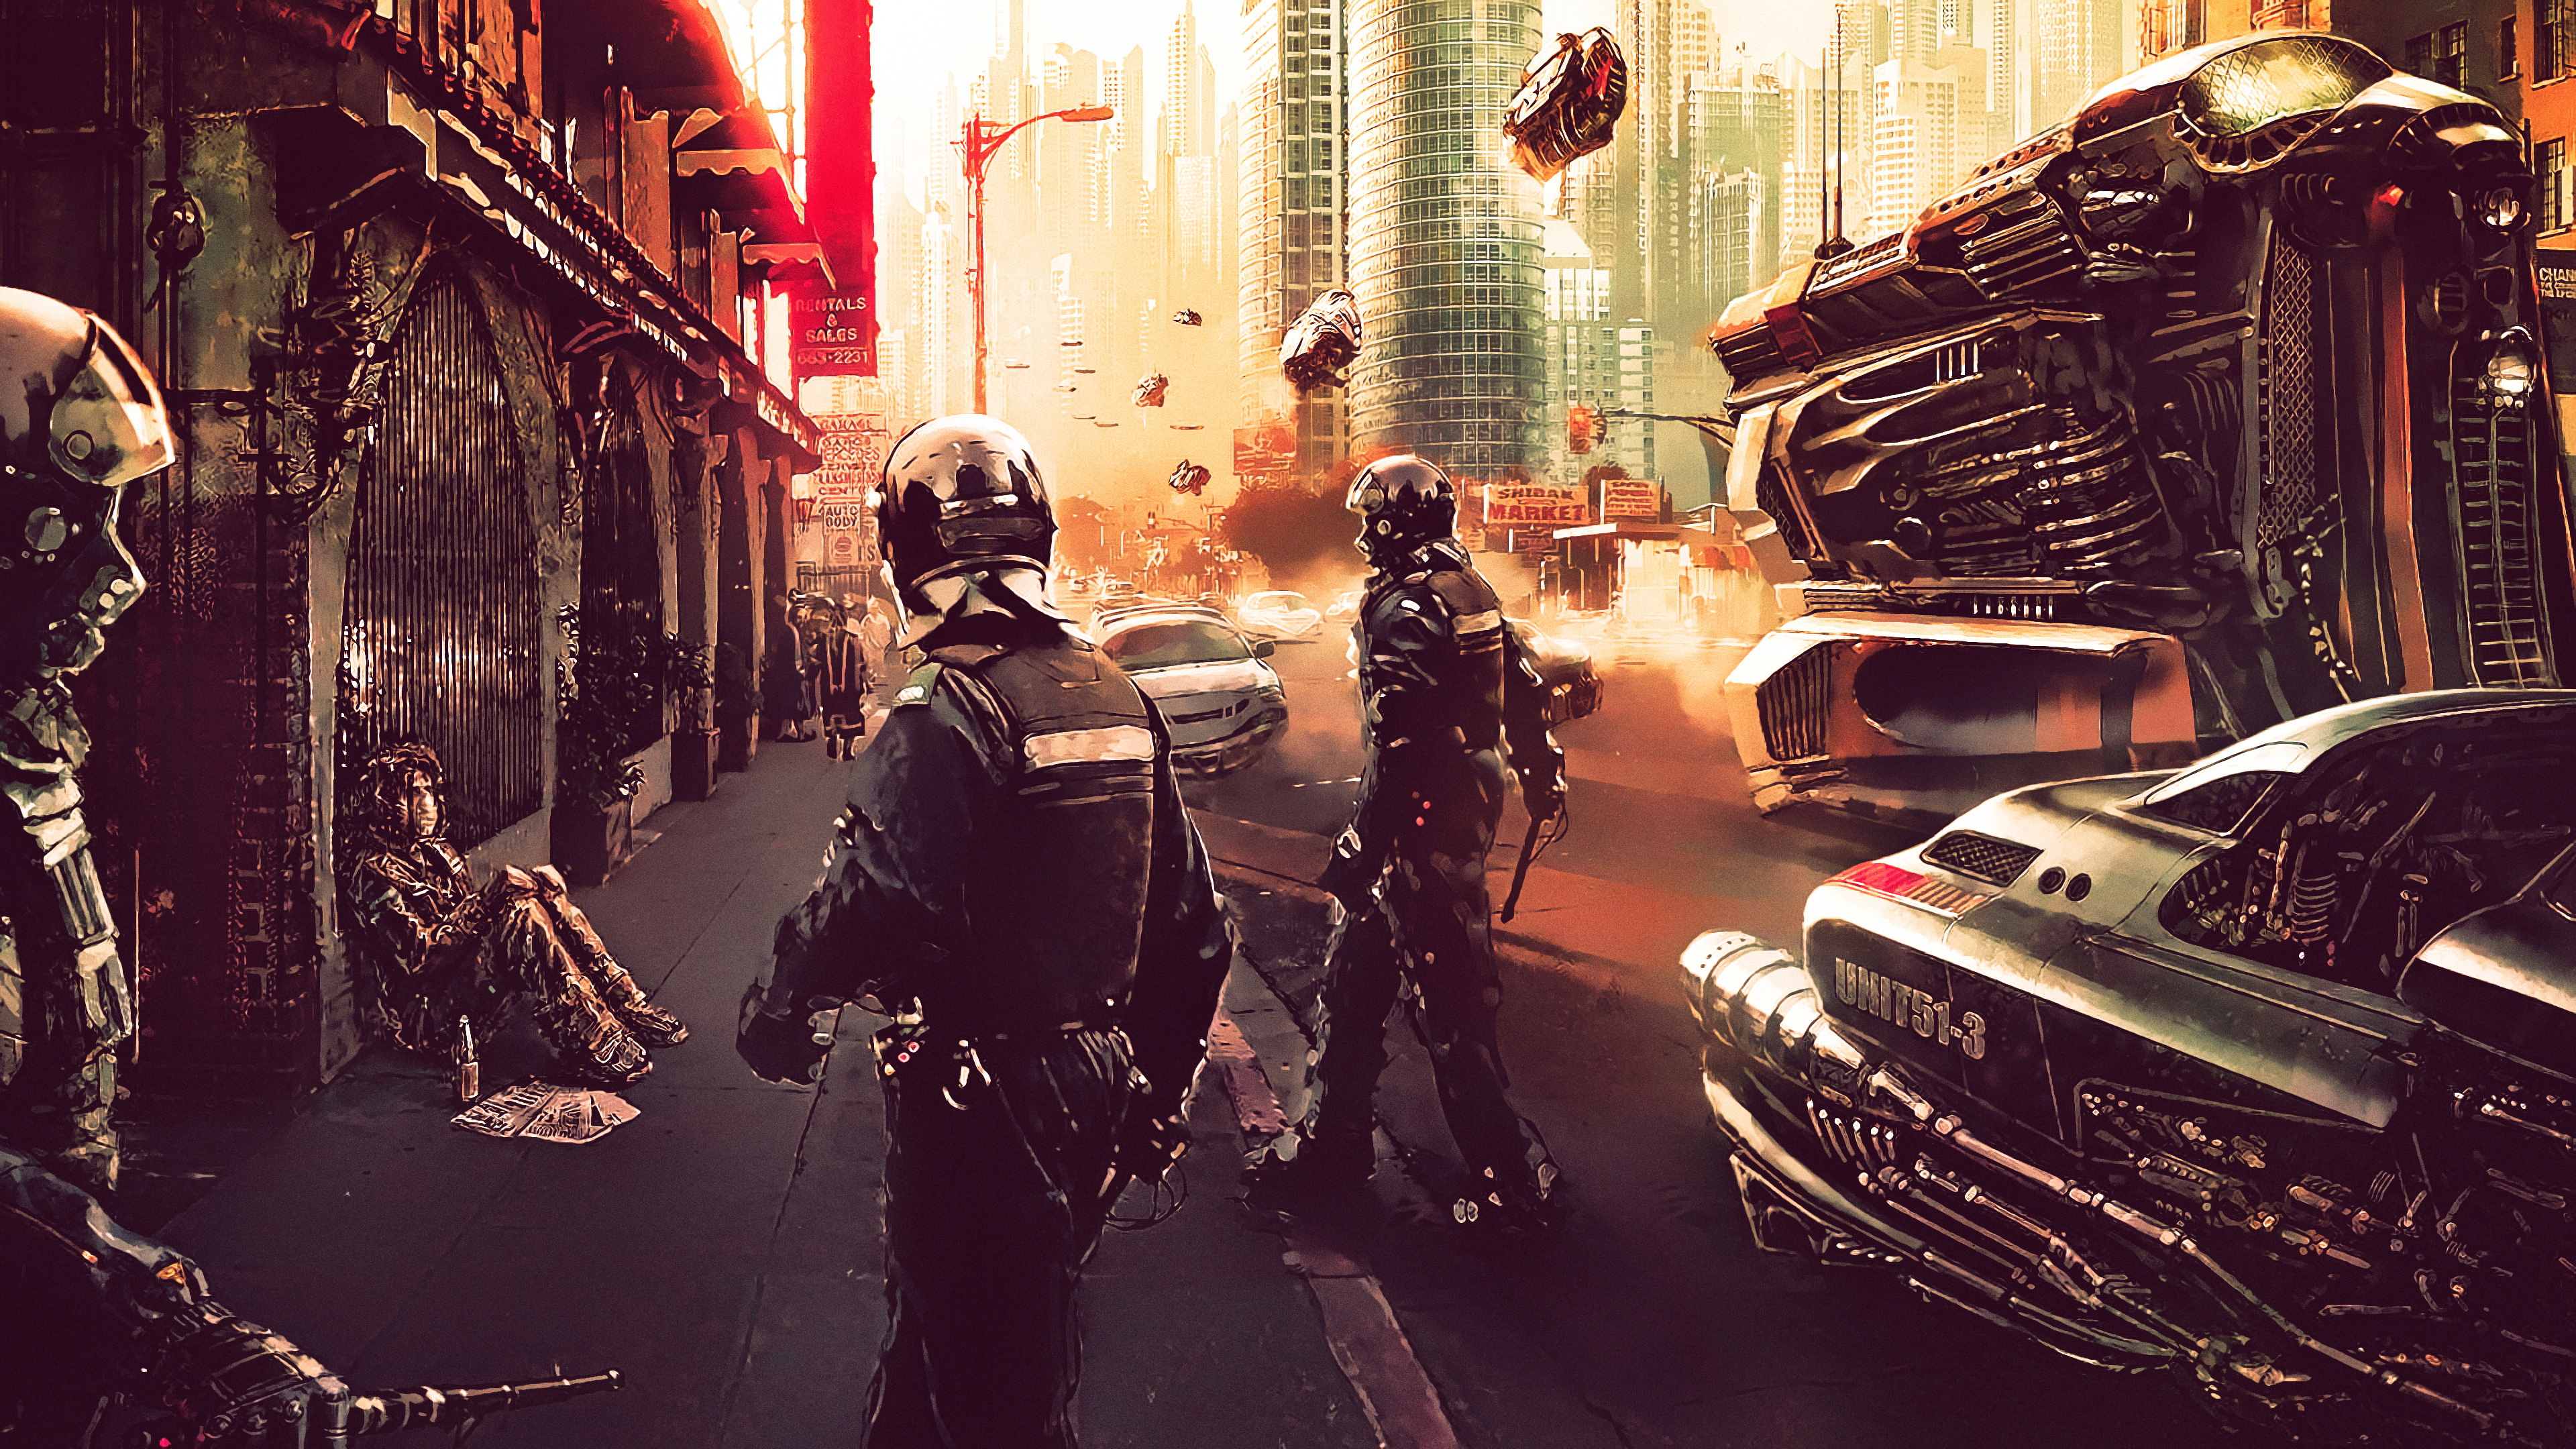 3d Futuristic Wallpapers Cyberpunk Police 4k Hd Artist 4k Wallpapers Images